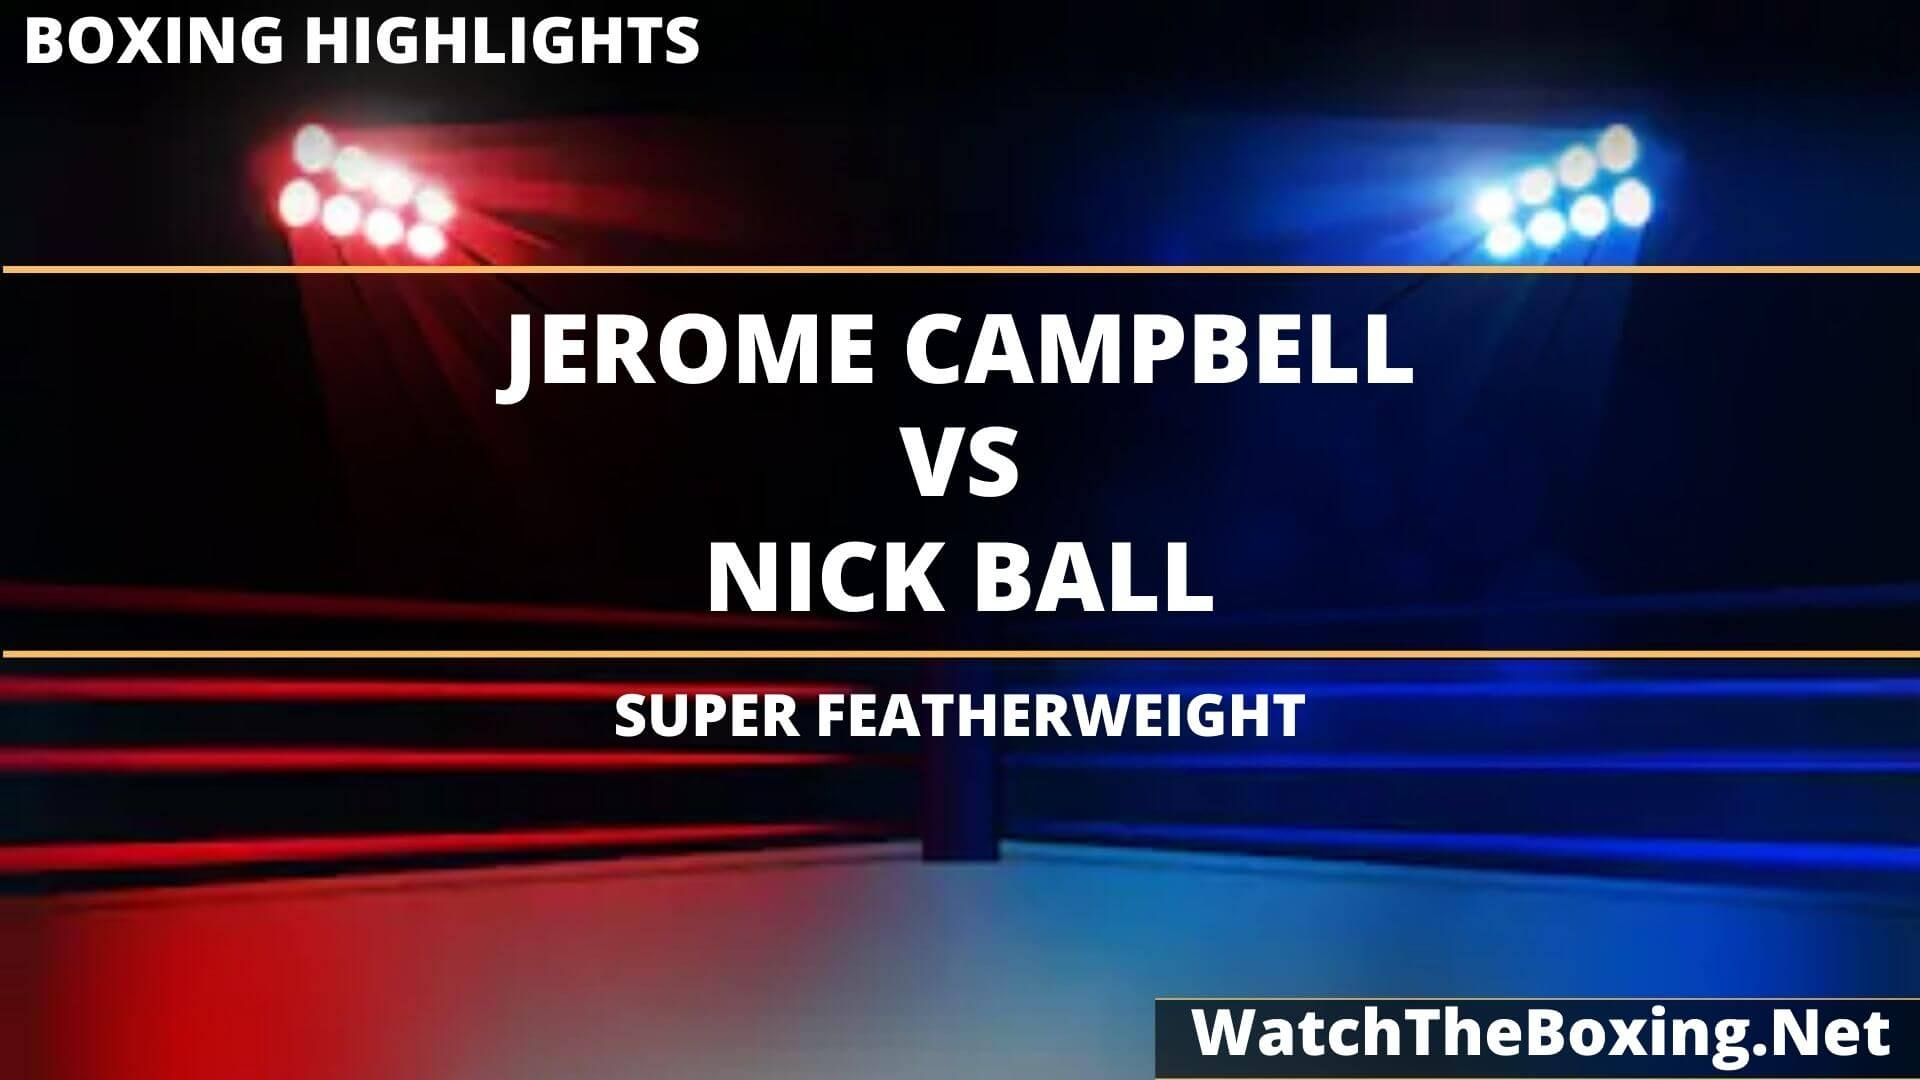 Jerome Campbell Vs Nick Ball Highlights 2020 Super Featherweight